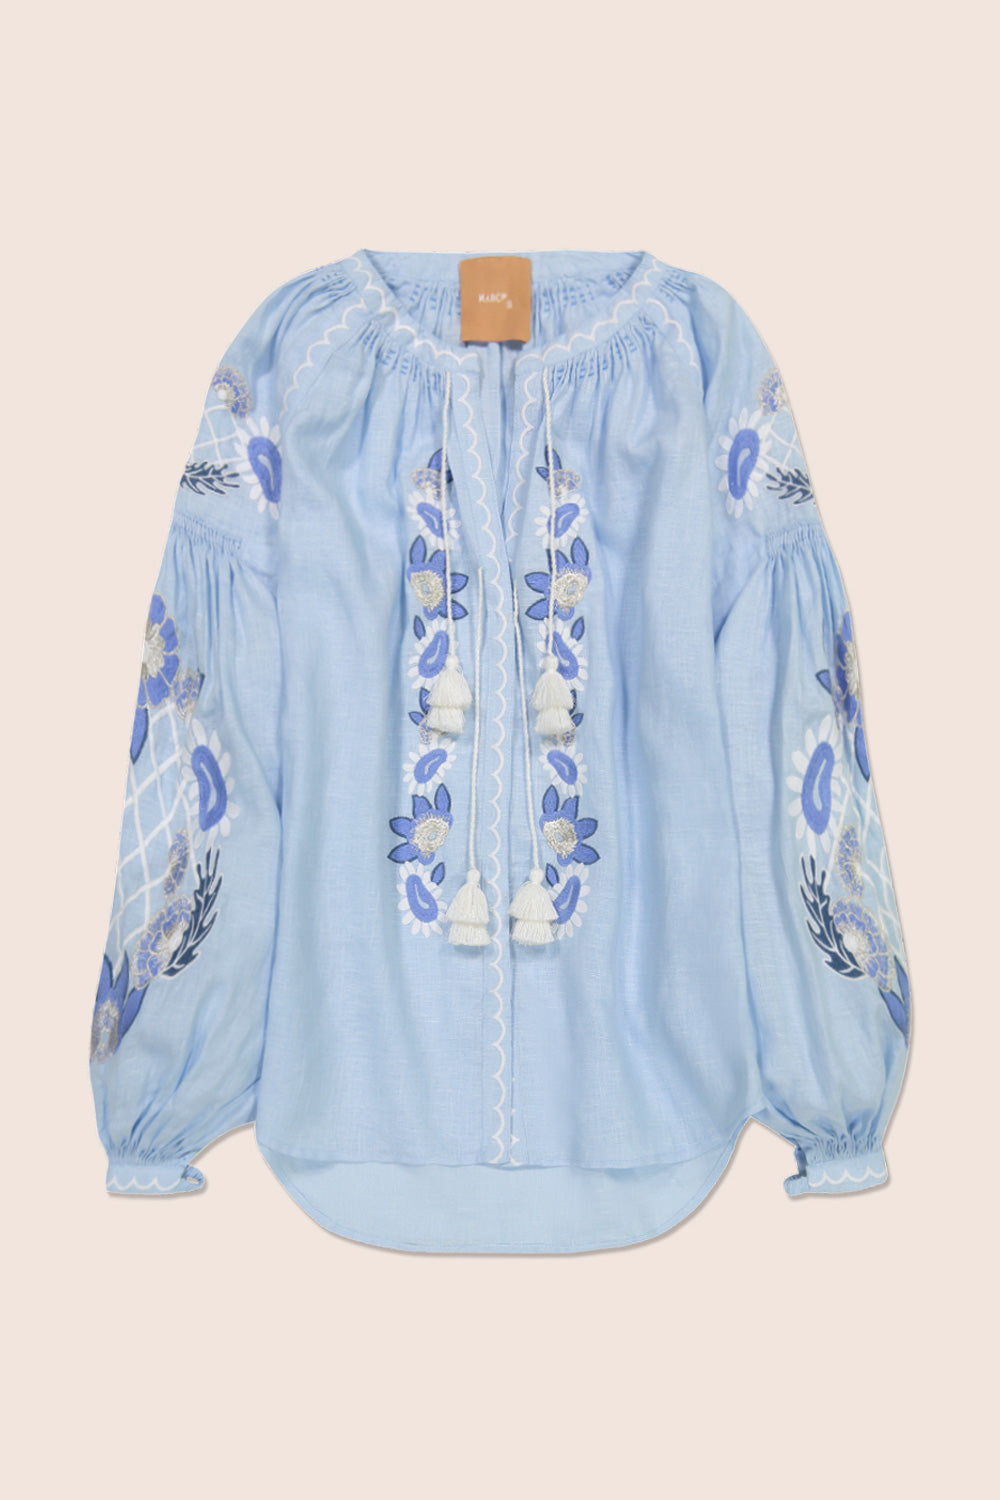 Flower Net Blouse in Blue